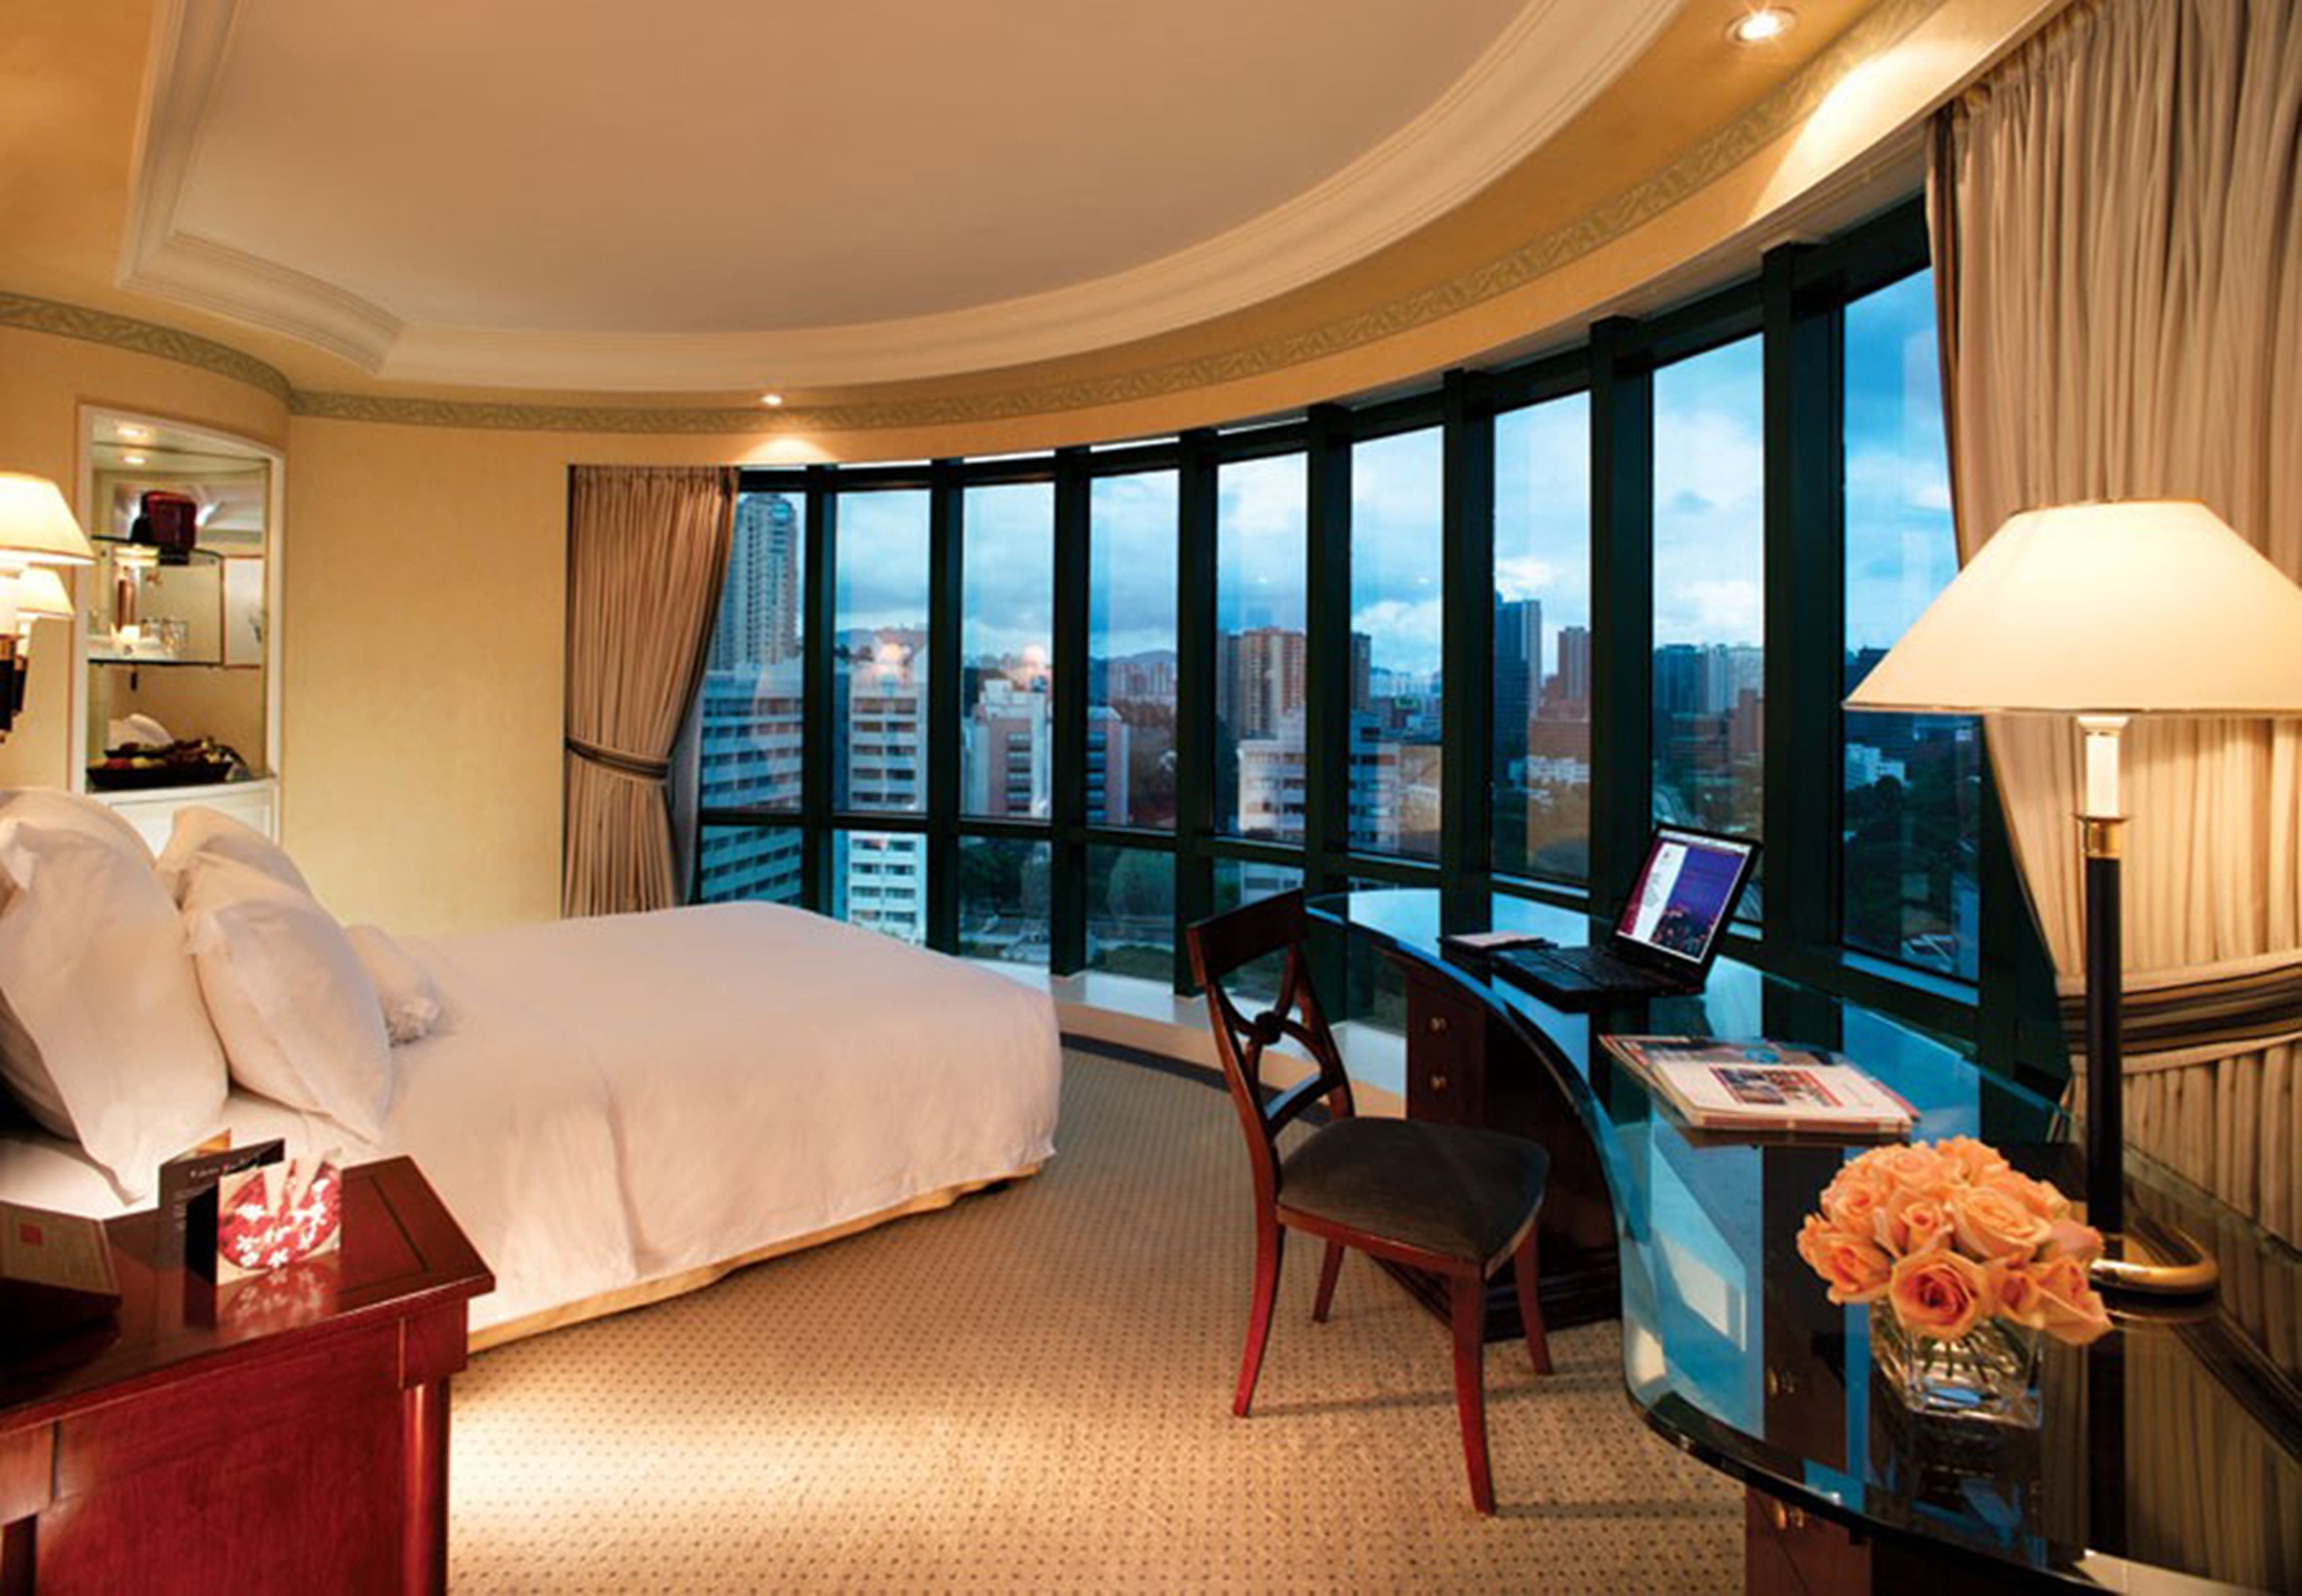 Smart rooms will render the hotel room experience more accessible and personalised